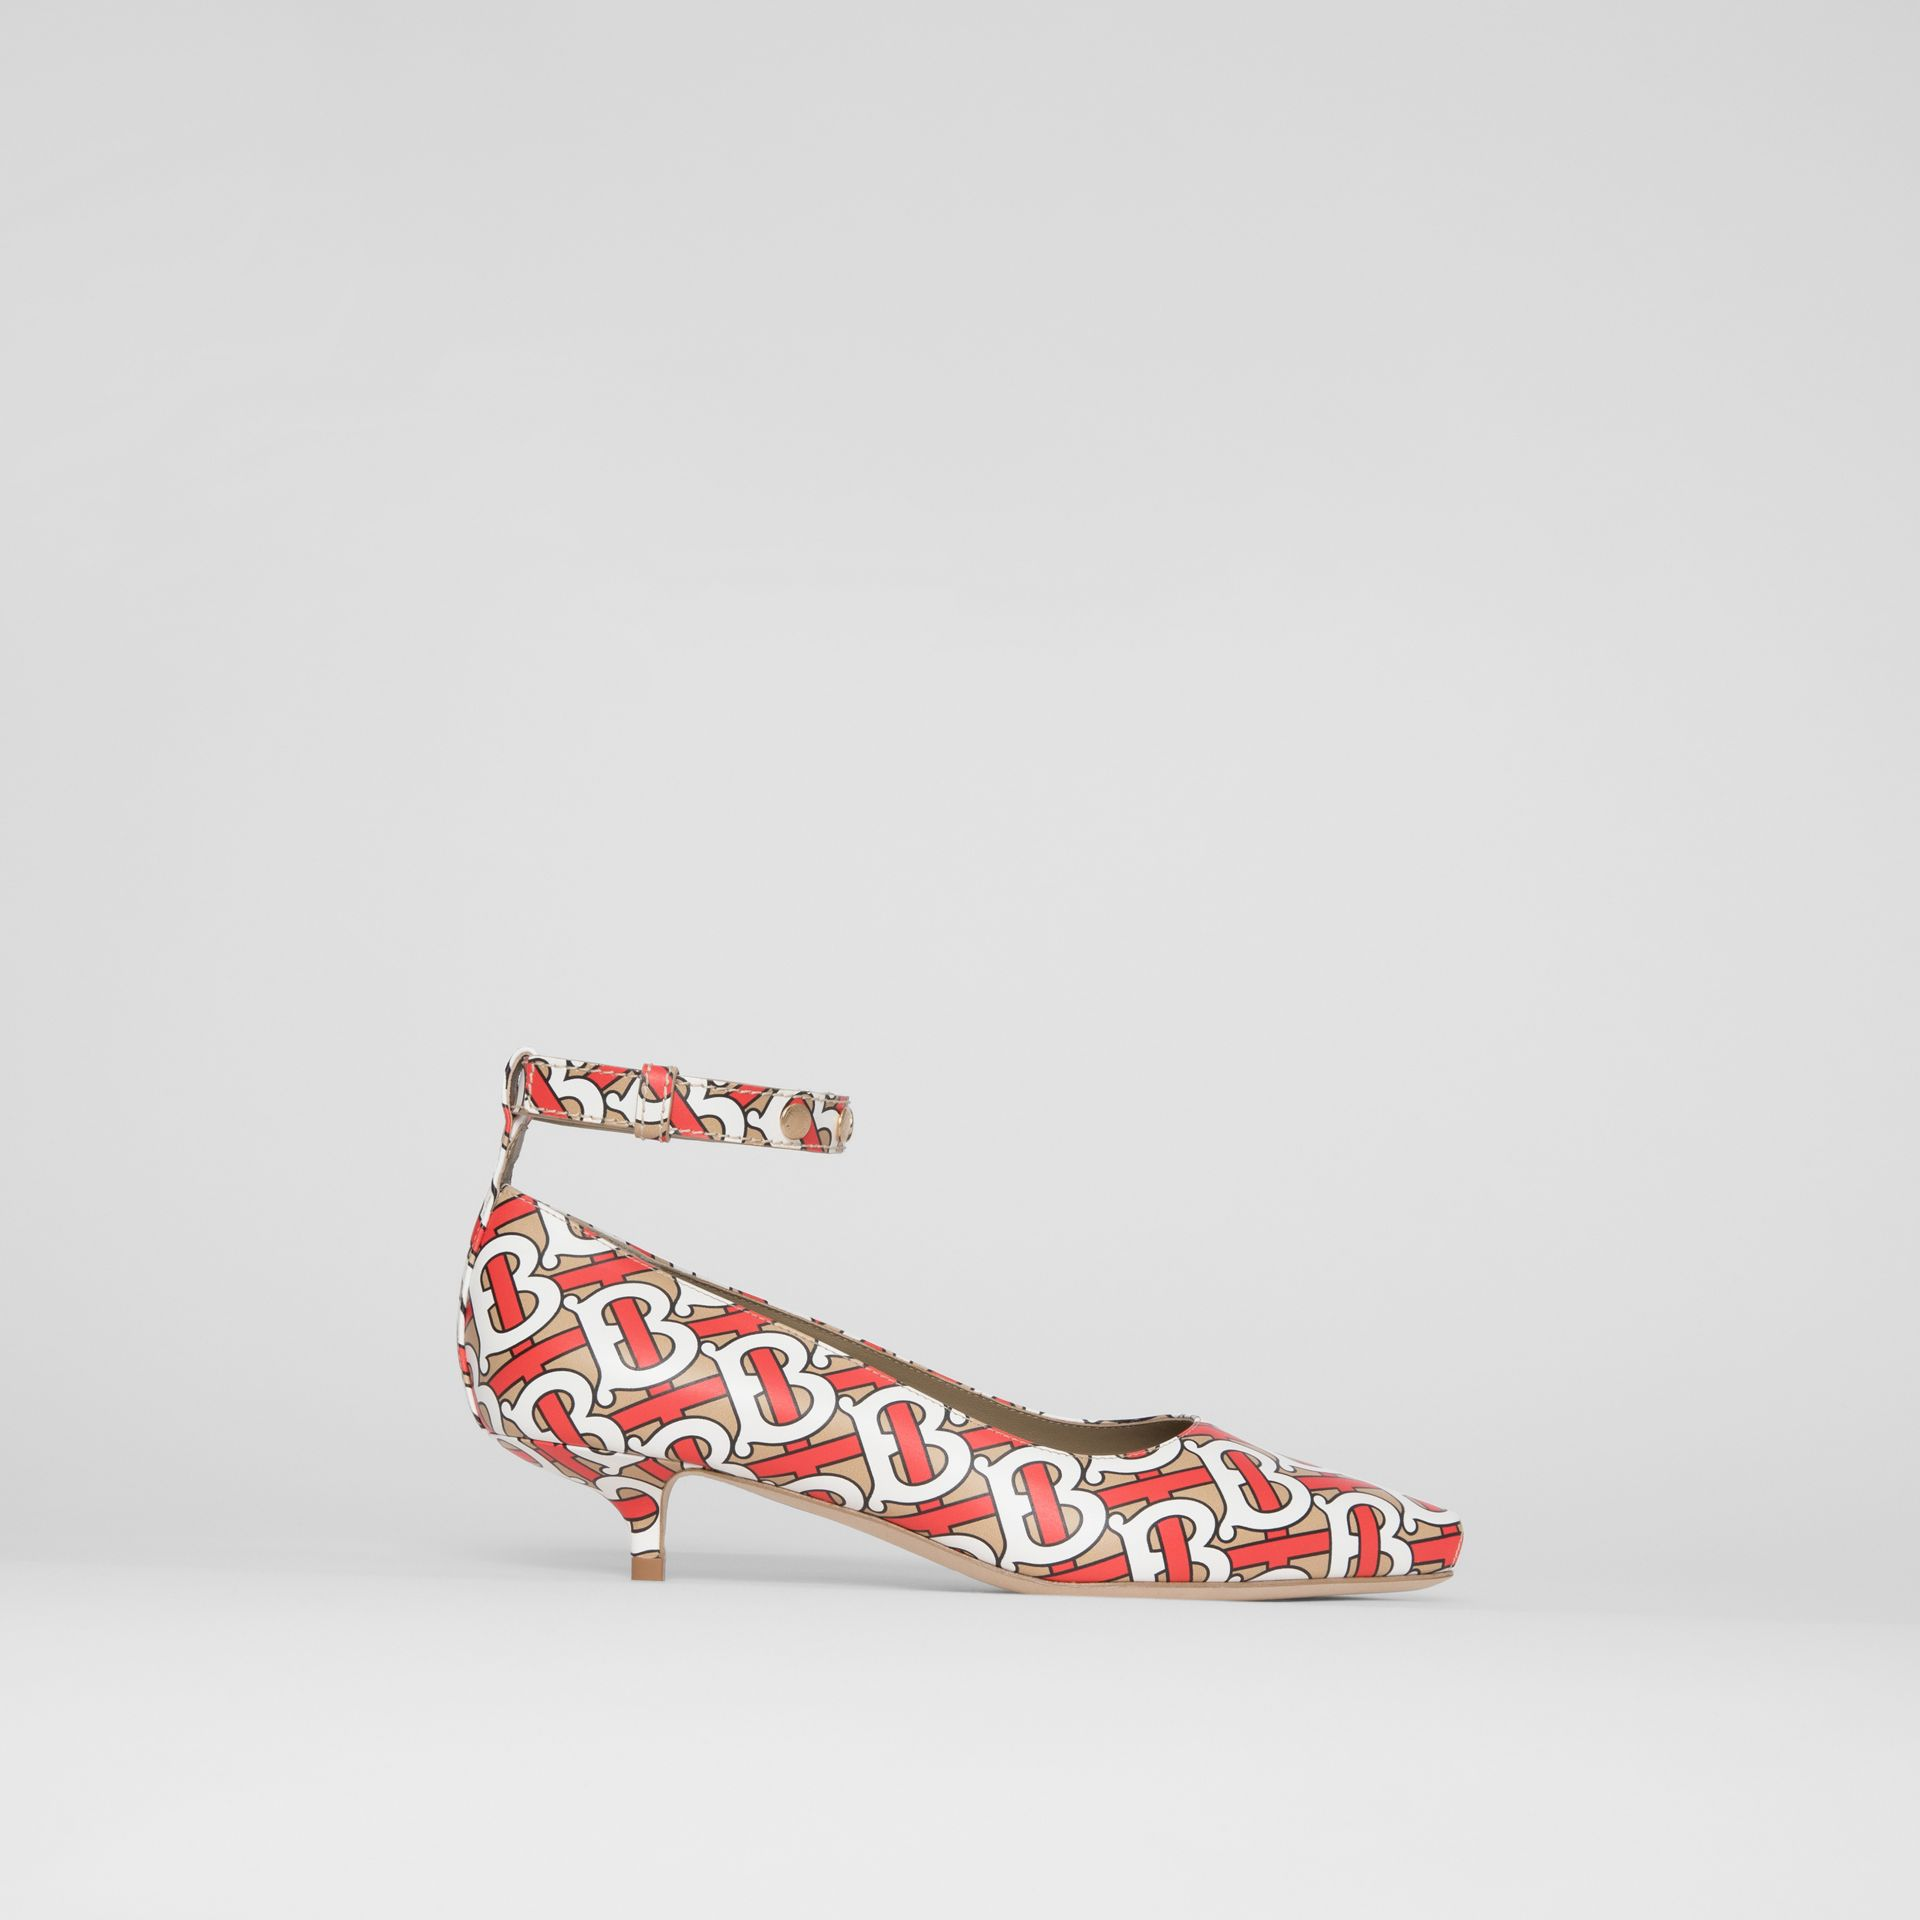 Monogram Print Leather Peep-toe Kitten-heel Pumps in Tawny - Women | Burberry Canada - gallery image 5